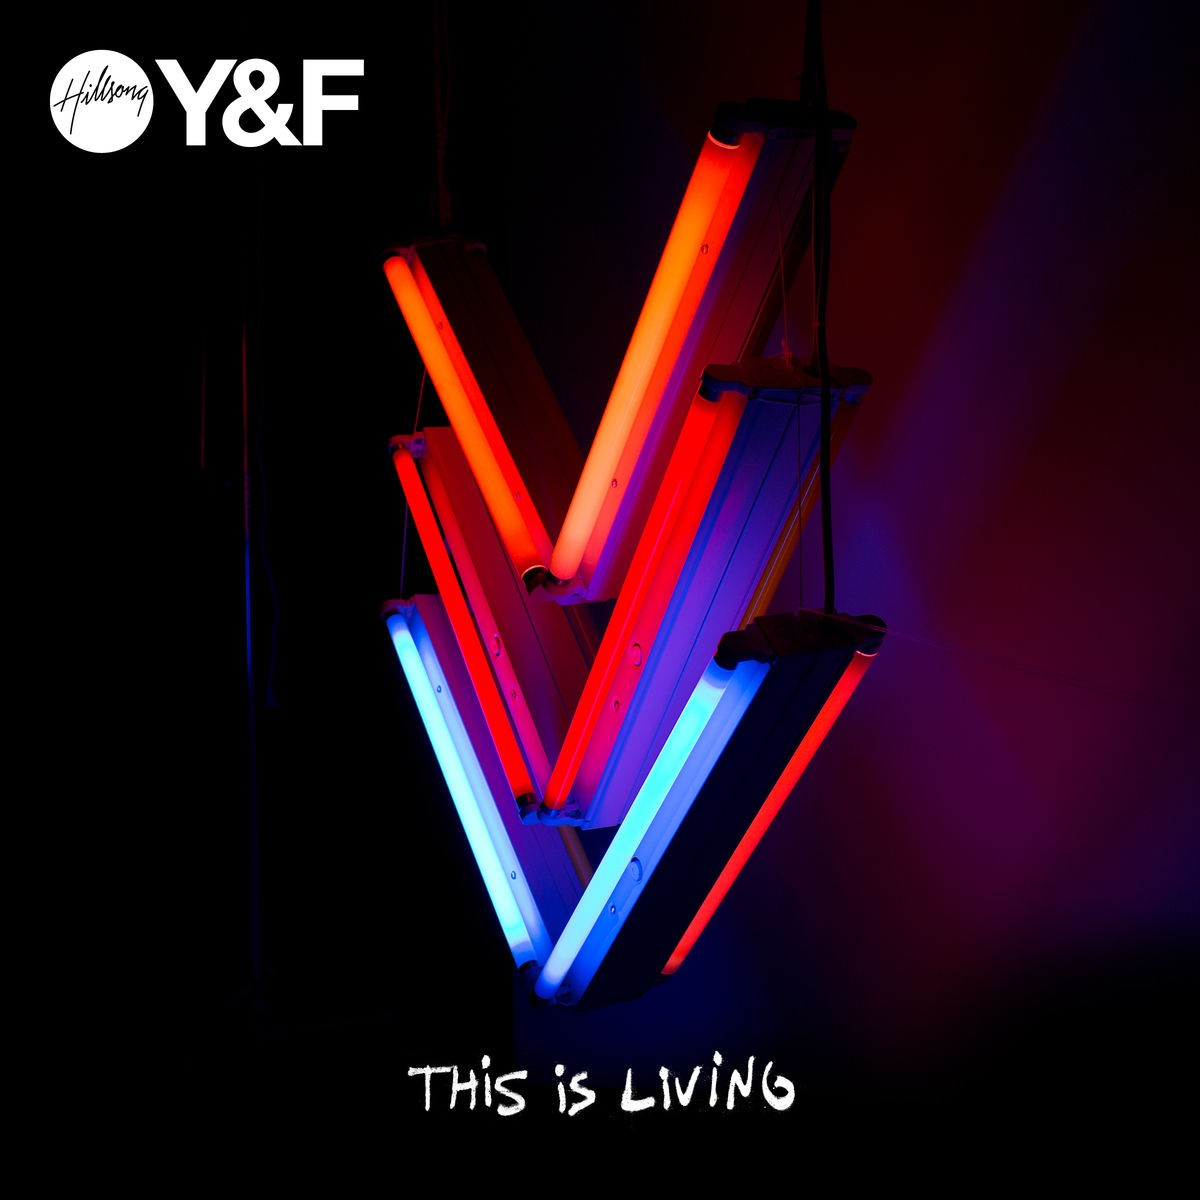 Hillsong Young & Free - This Is Living CD - HMACD293